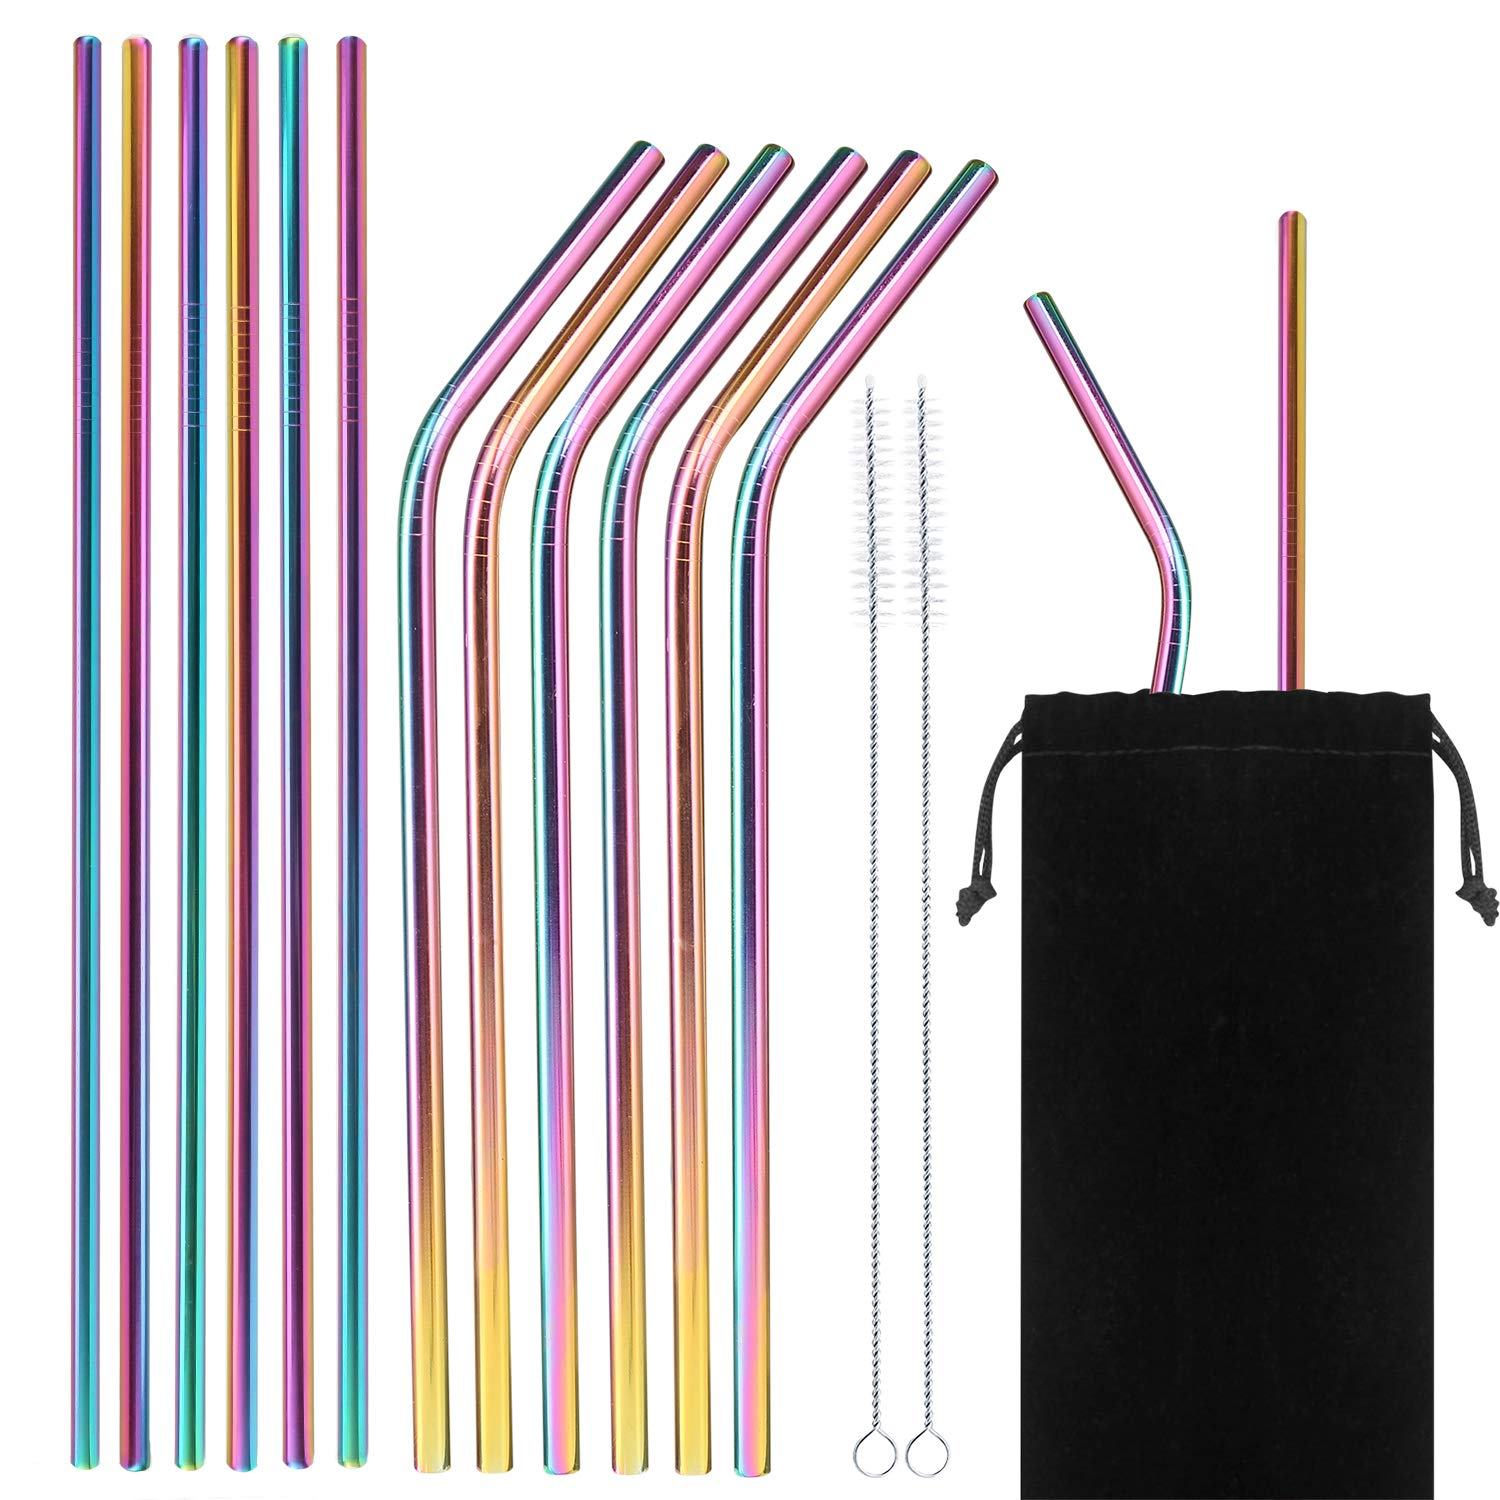 Set of 14 - Stainless Steel Drinking Straws, Eco Friendly 6 mm Metal Bent Straw for Tumbler Yeti or Ozark Trail Ramblers Cups, with 2 Cleaning Brushes - And Cary Bag, Rainbow